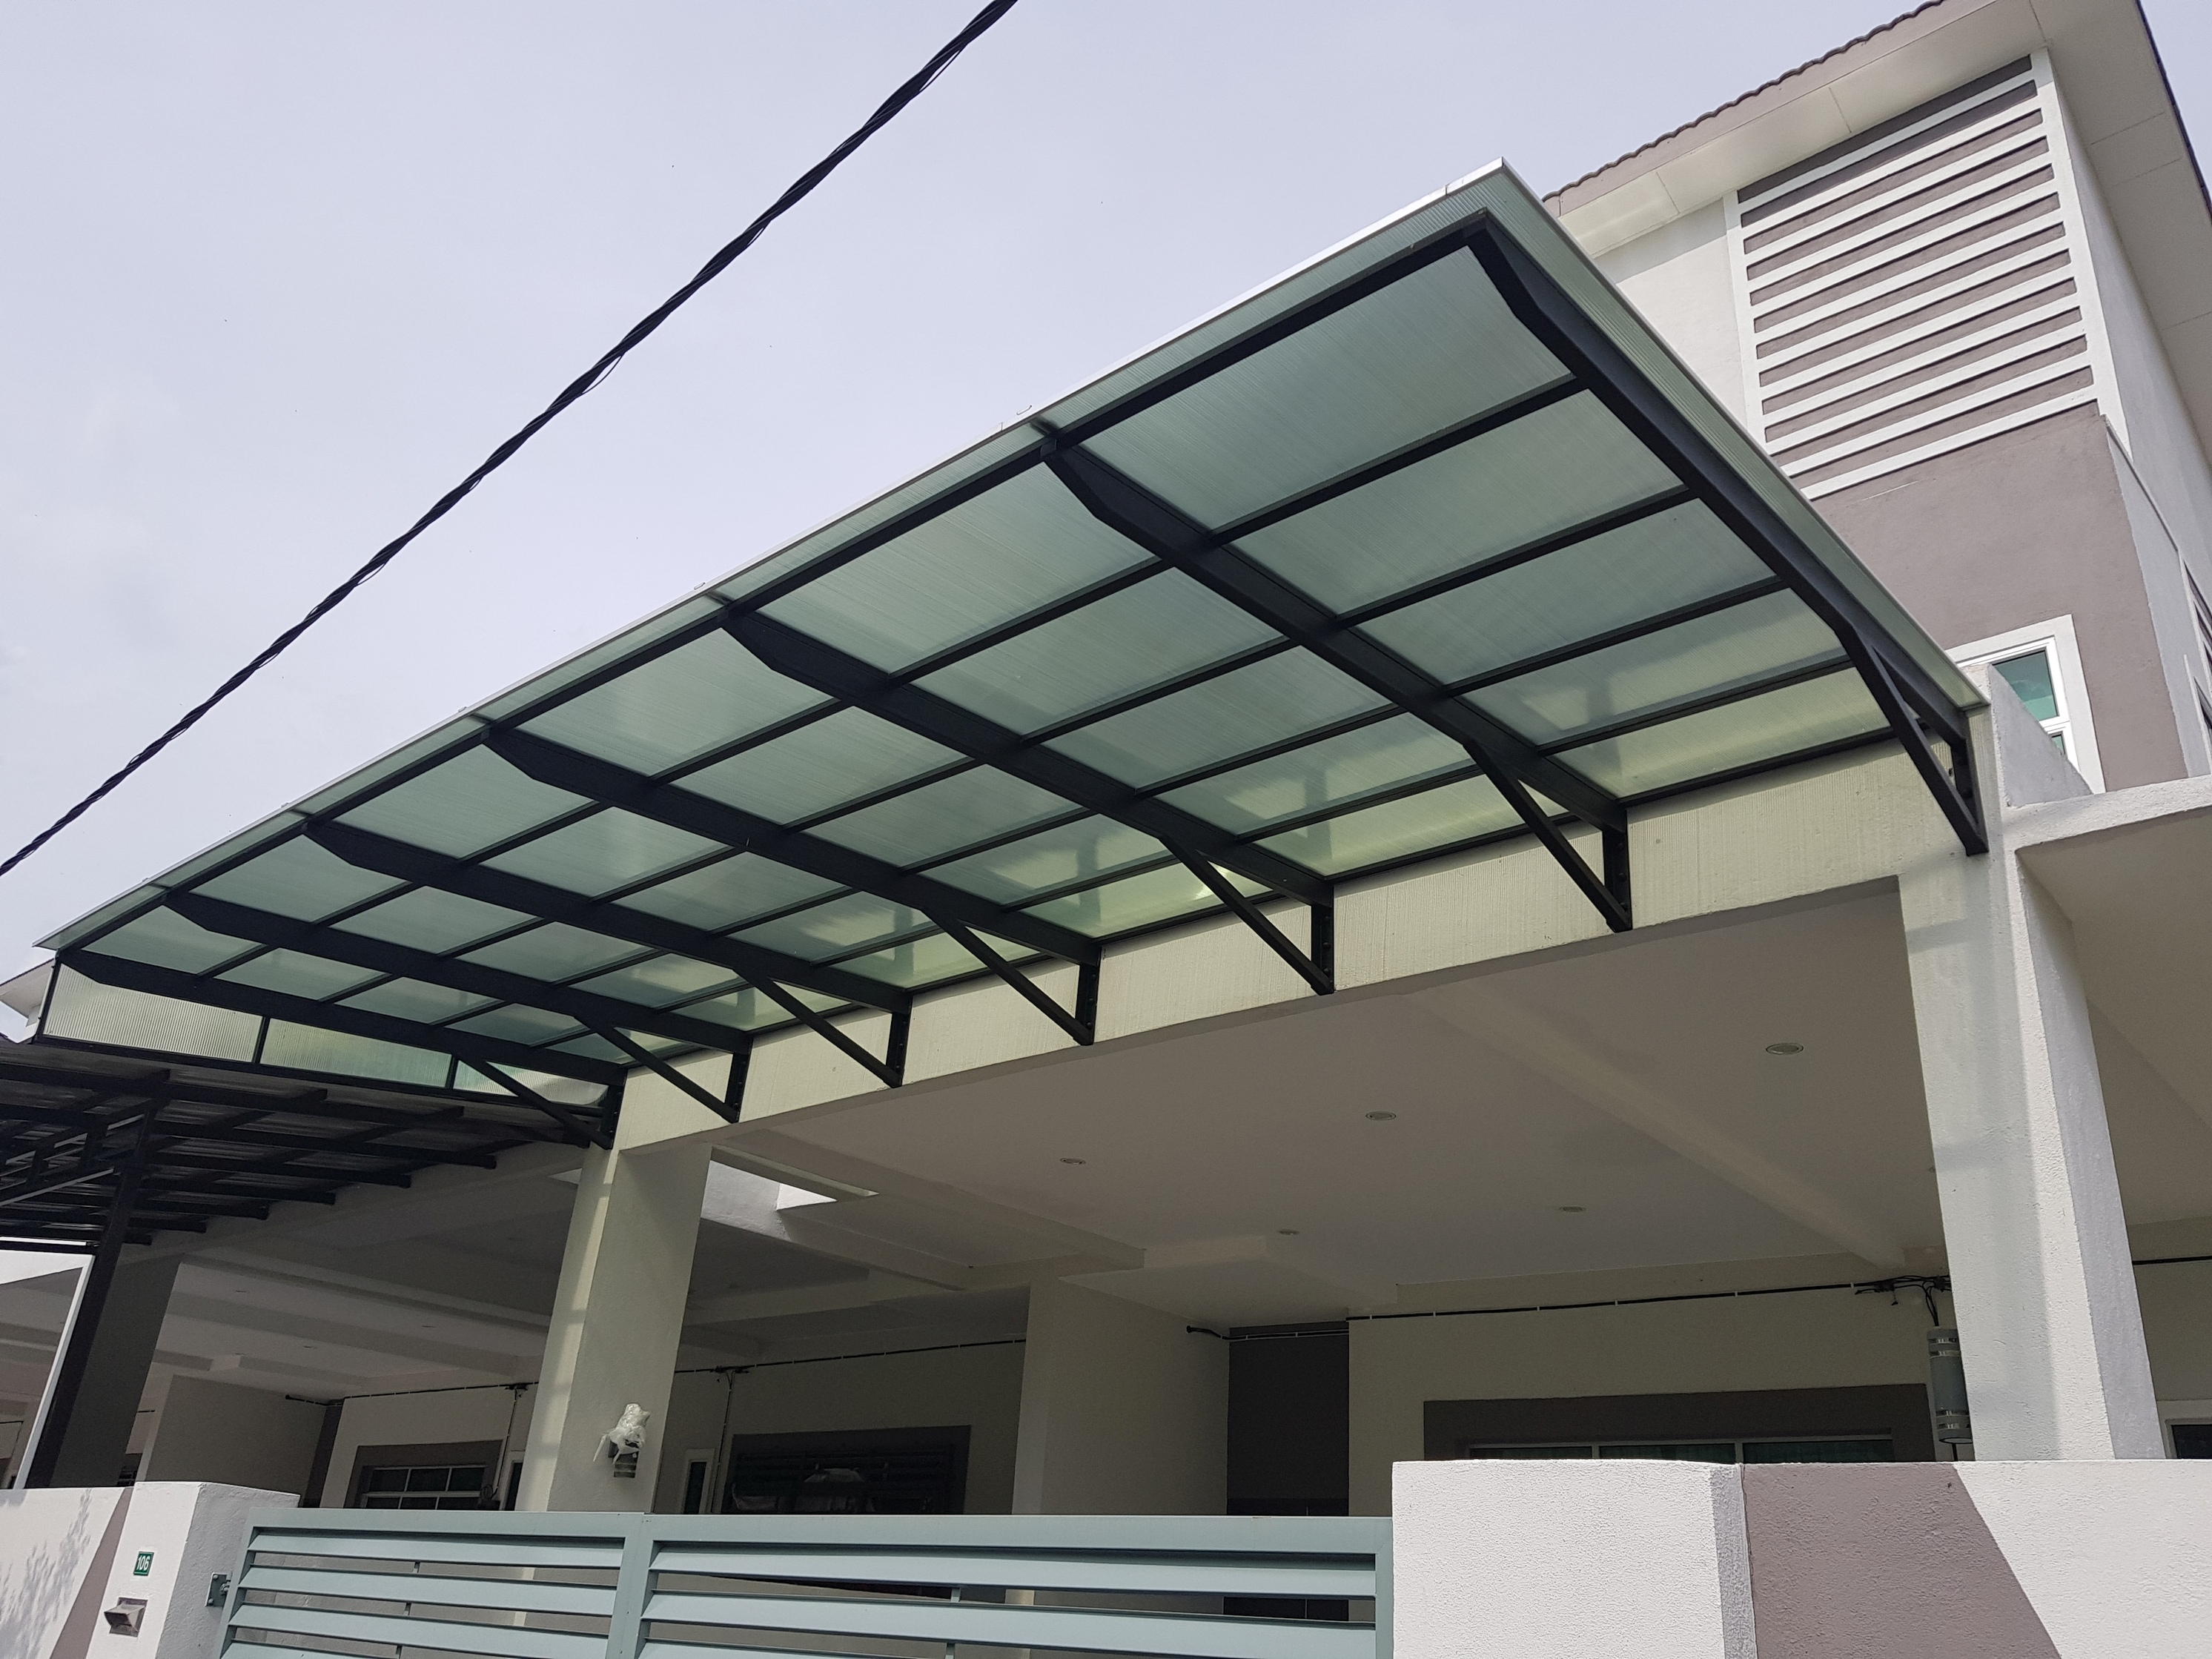 Ipoh Perak Lexan Thermoclear SCIR 5 Walls Polycarbonate Awning